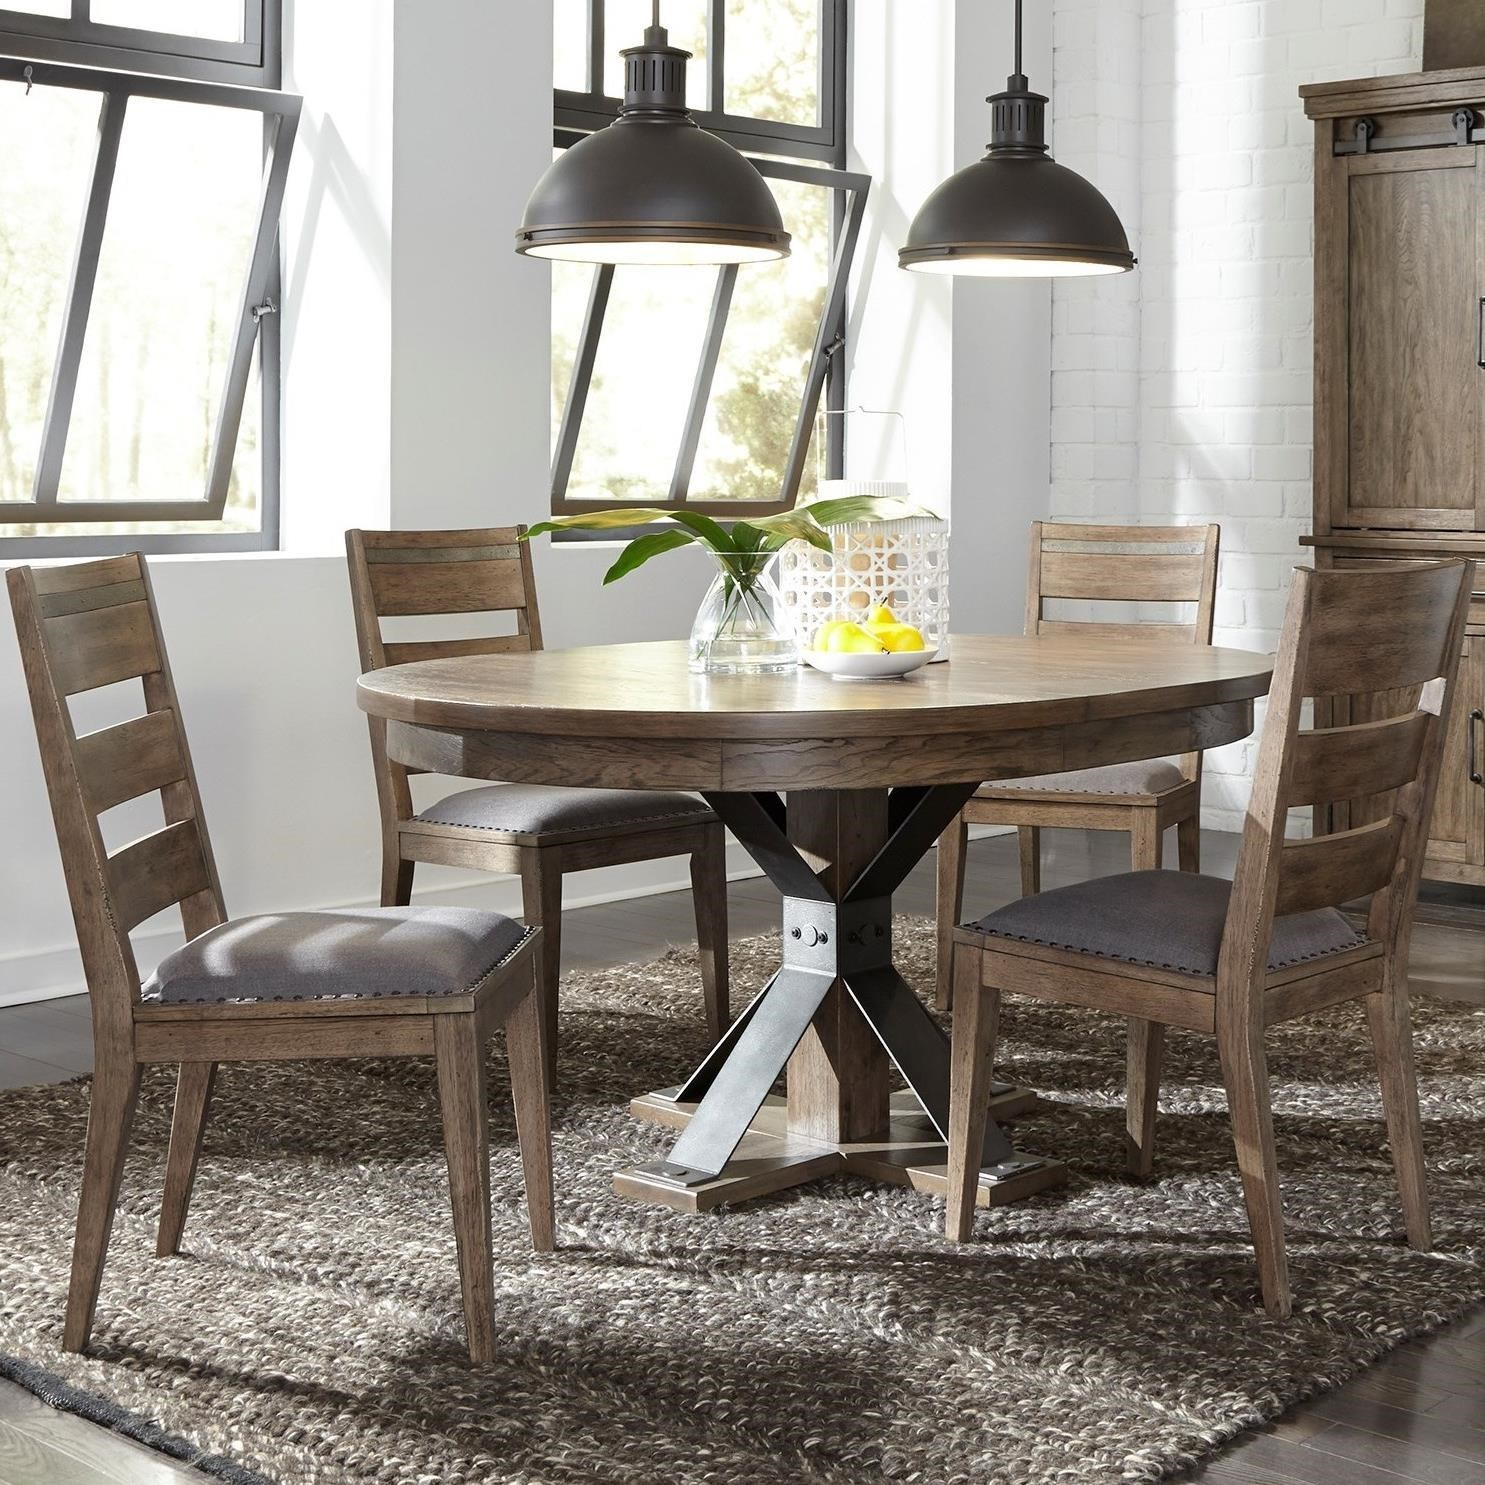 Liberty Furniture Sonoma Road 5 Piece Pedestal Table And Chair Set